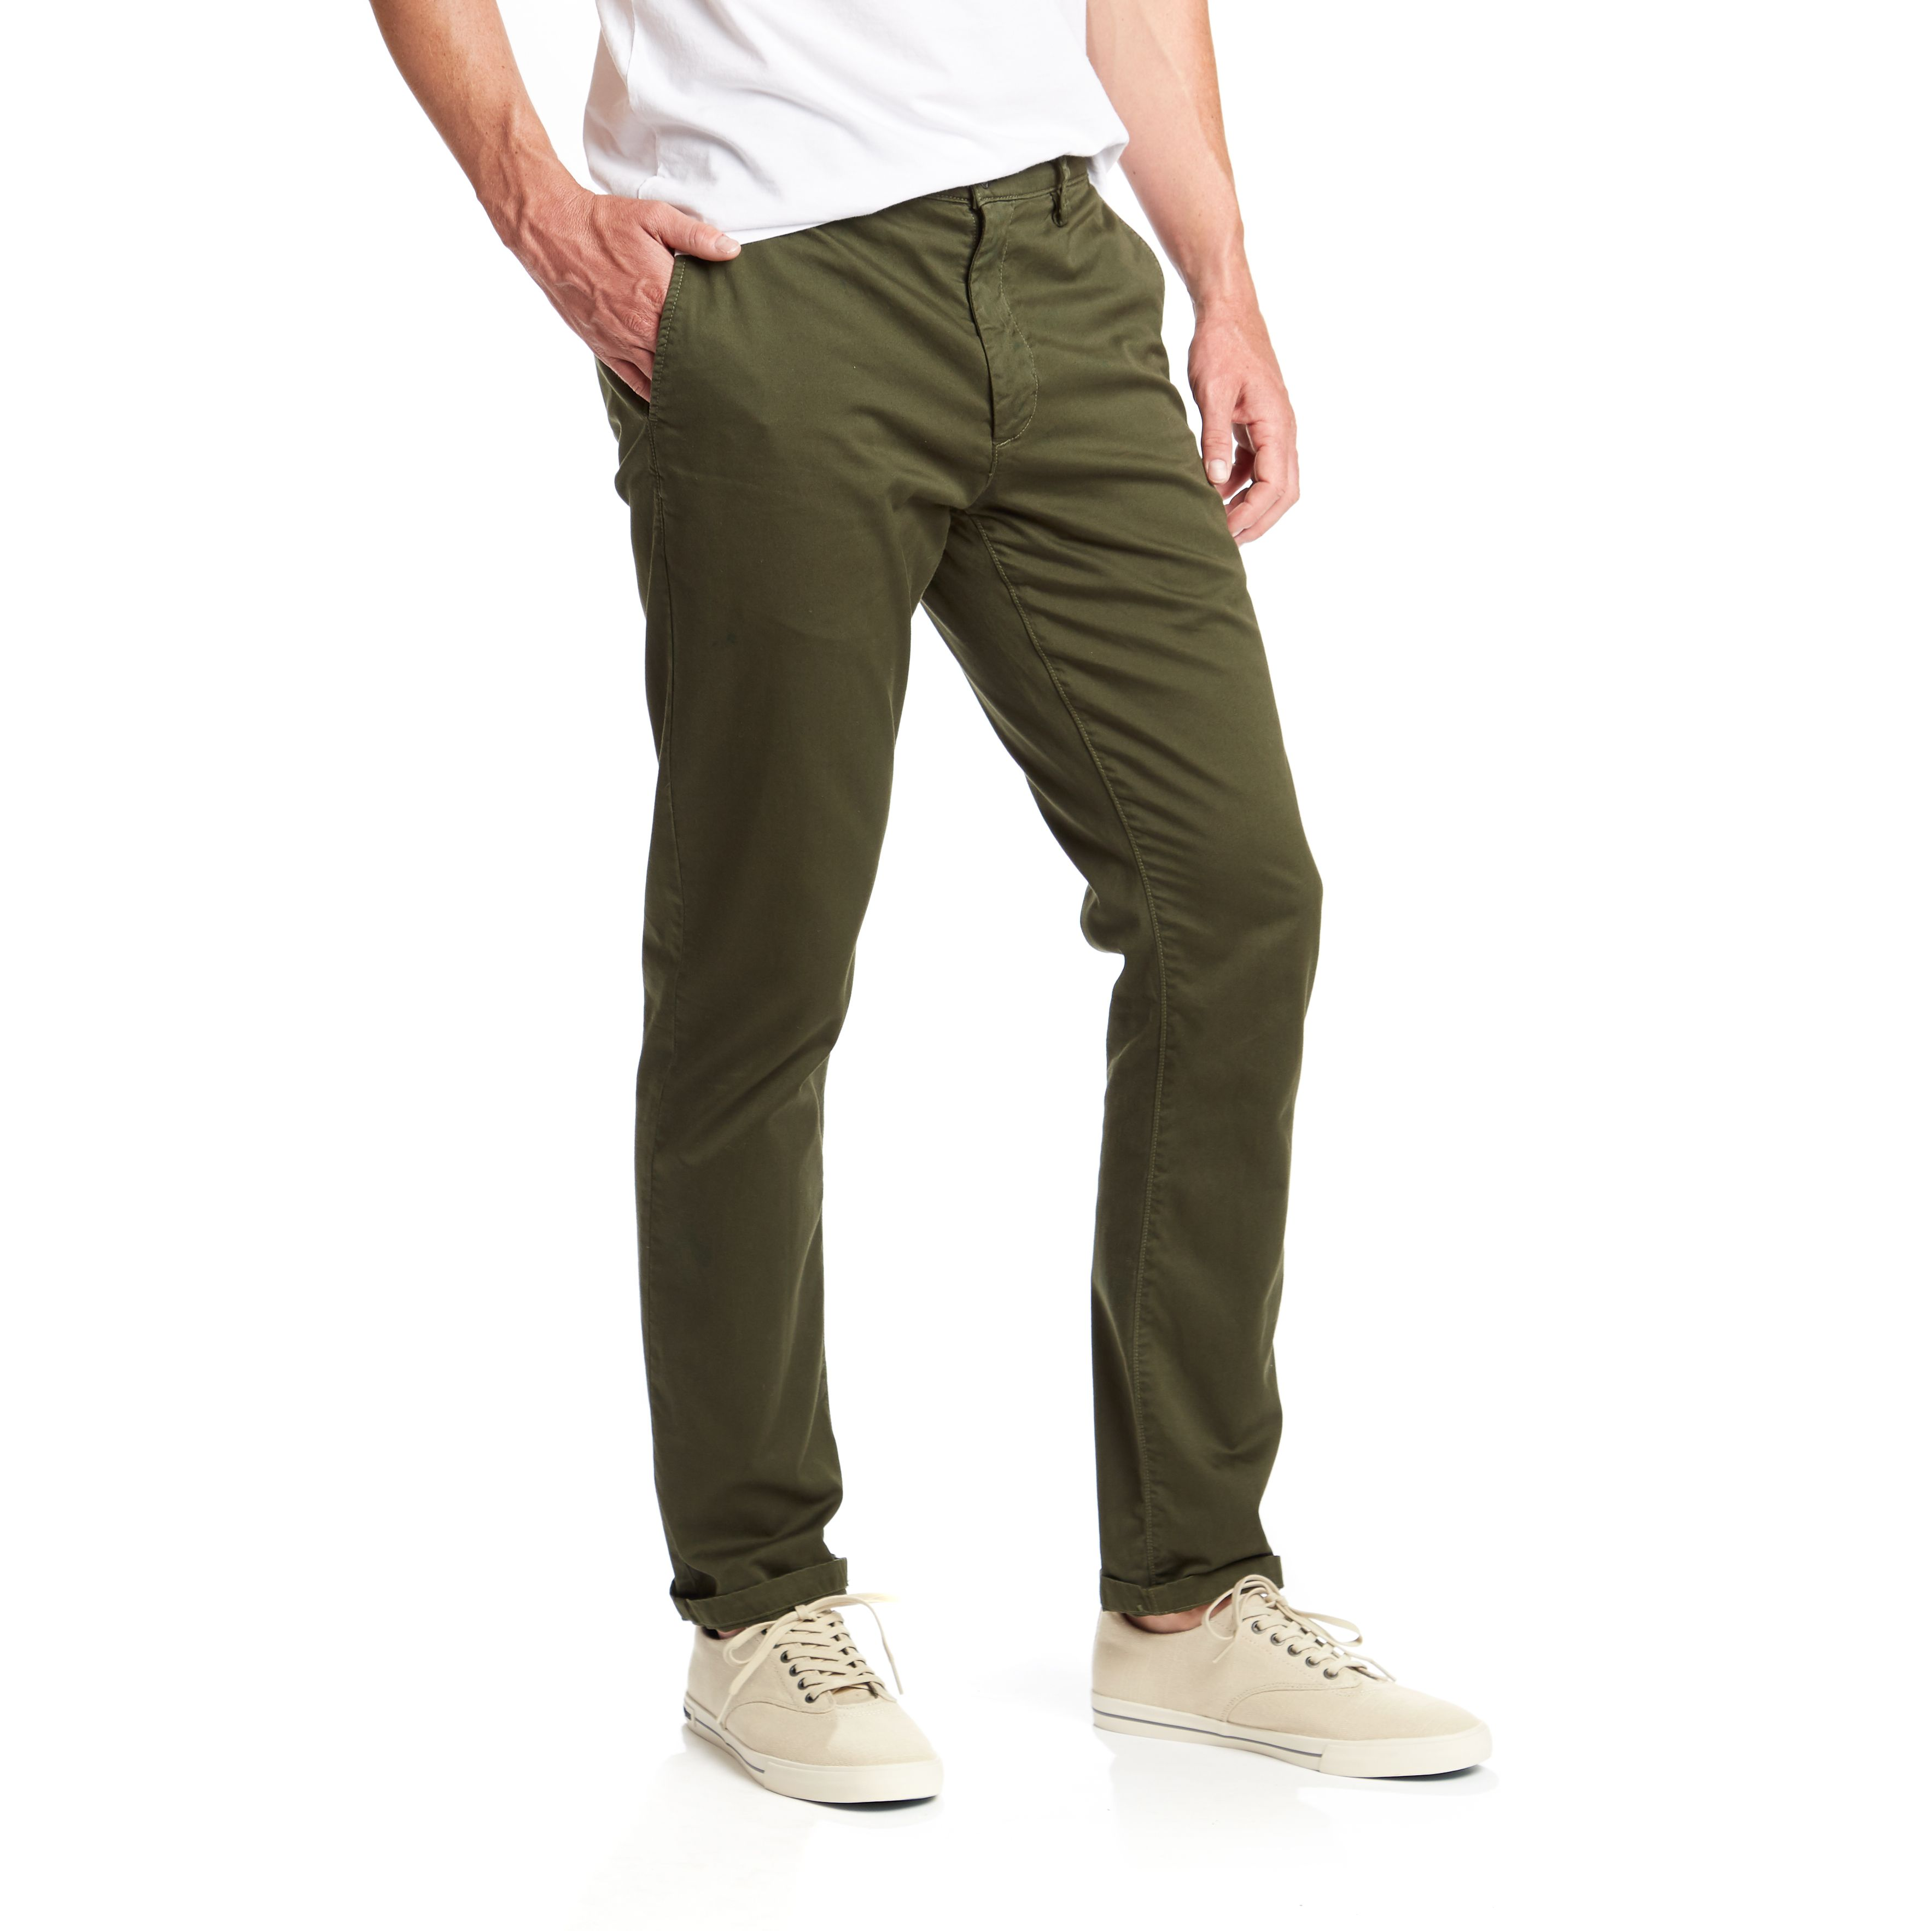 STRETCH COMFORT NEW VARIETY SLIMMER FIT MEN/'S ENGLISH LAUNDRY 5 POCKET PANT